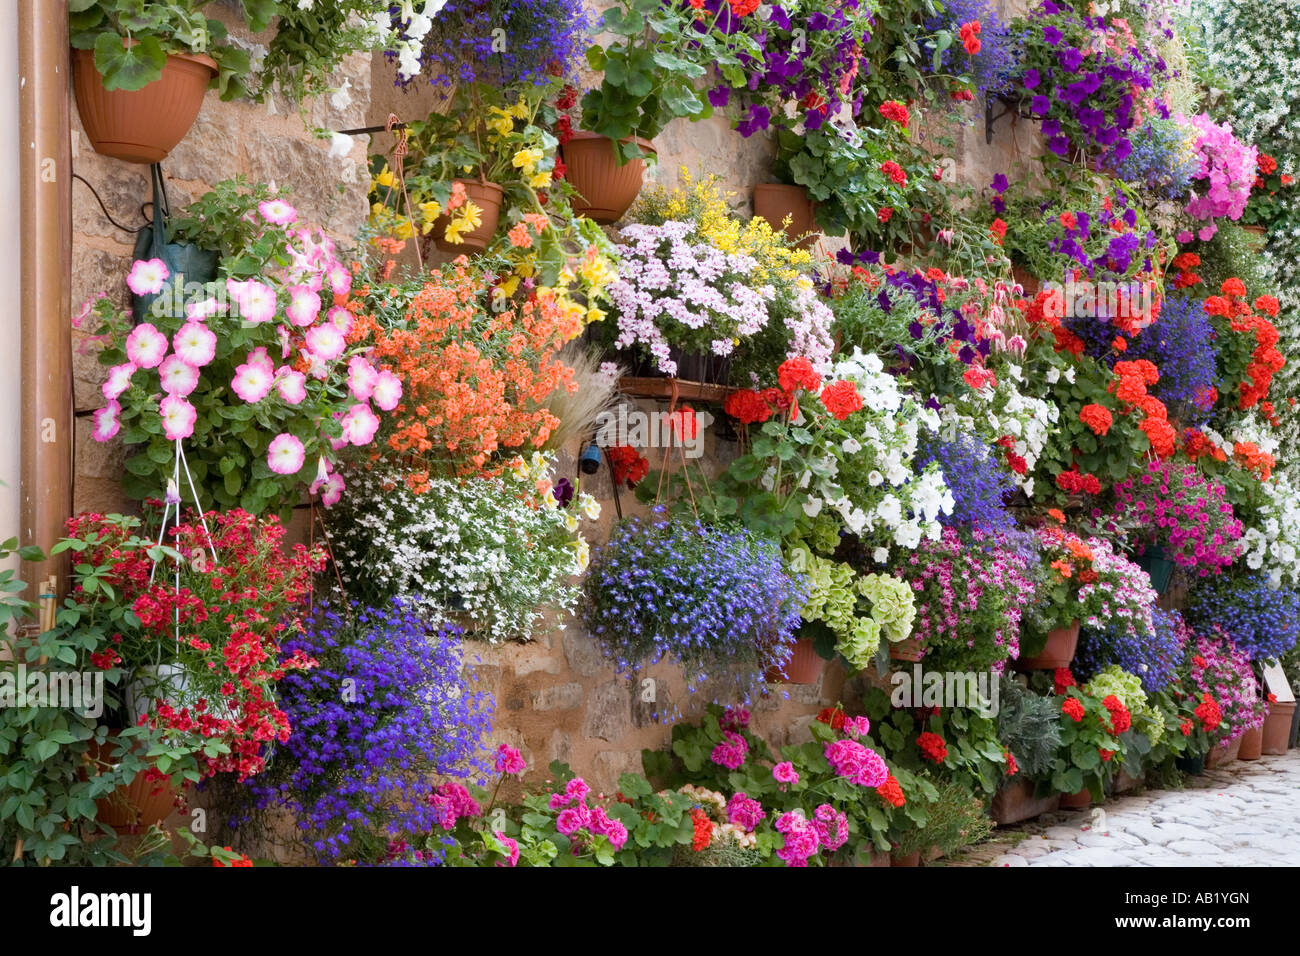 Wall Hanging Baskets wall hanging baskets and covered wall floral display spoleto stock